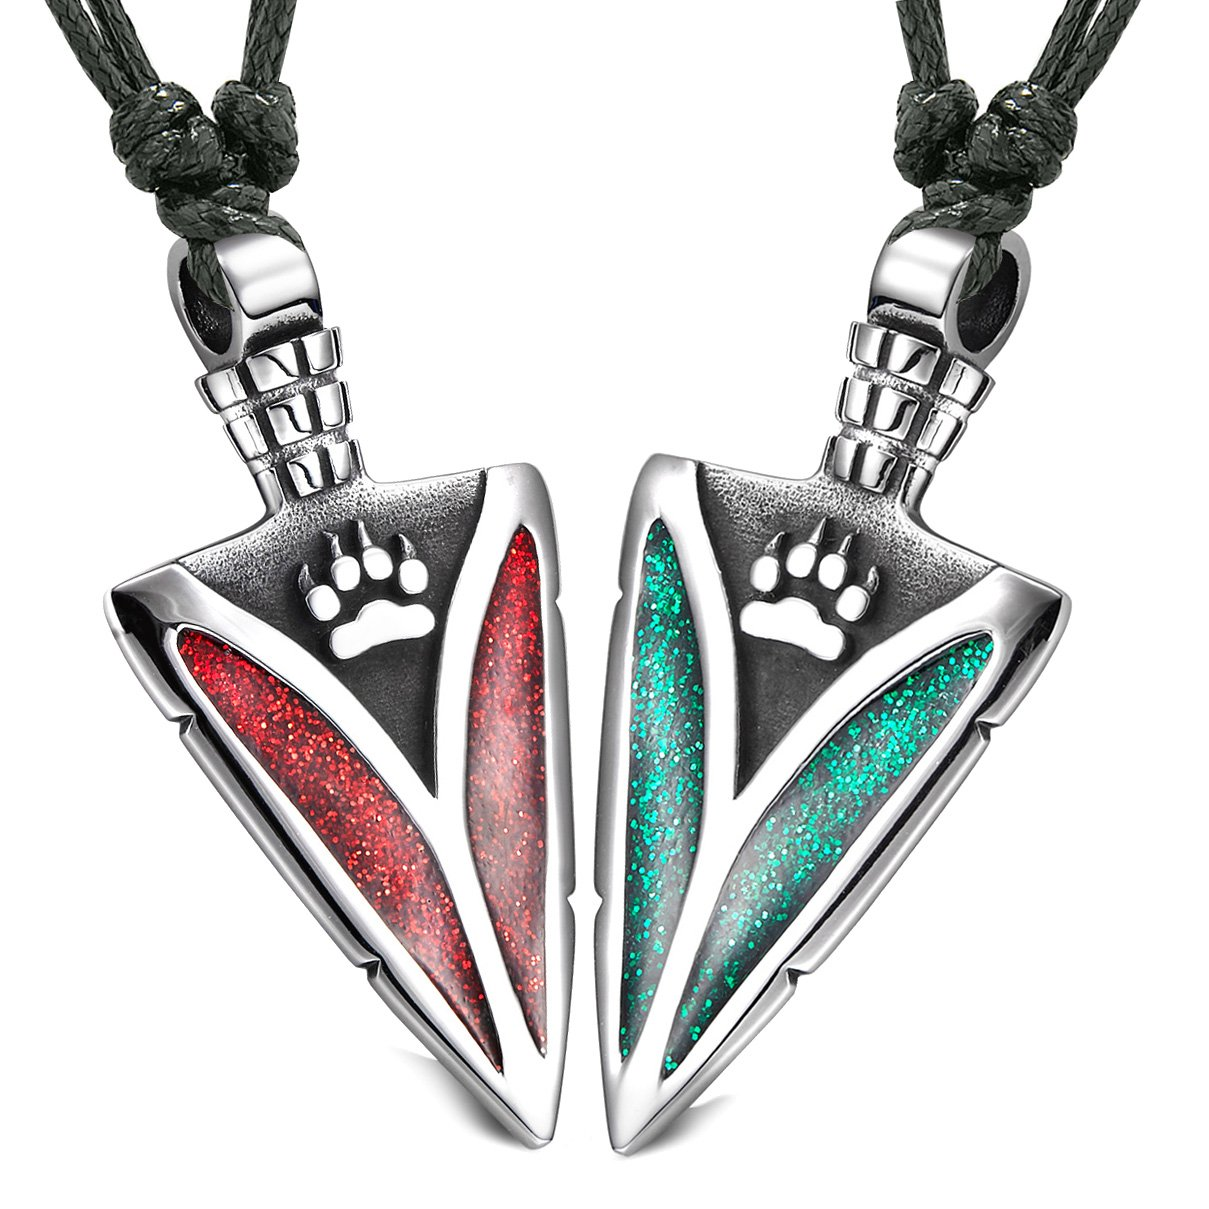 Arrowhead Wild Wolf Paw Love Couples or BFF Set Amulets Sparkling Royal Green Red Adjustable Necklaces